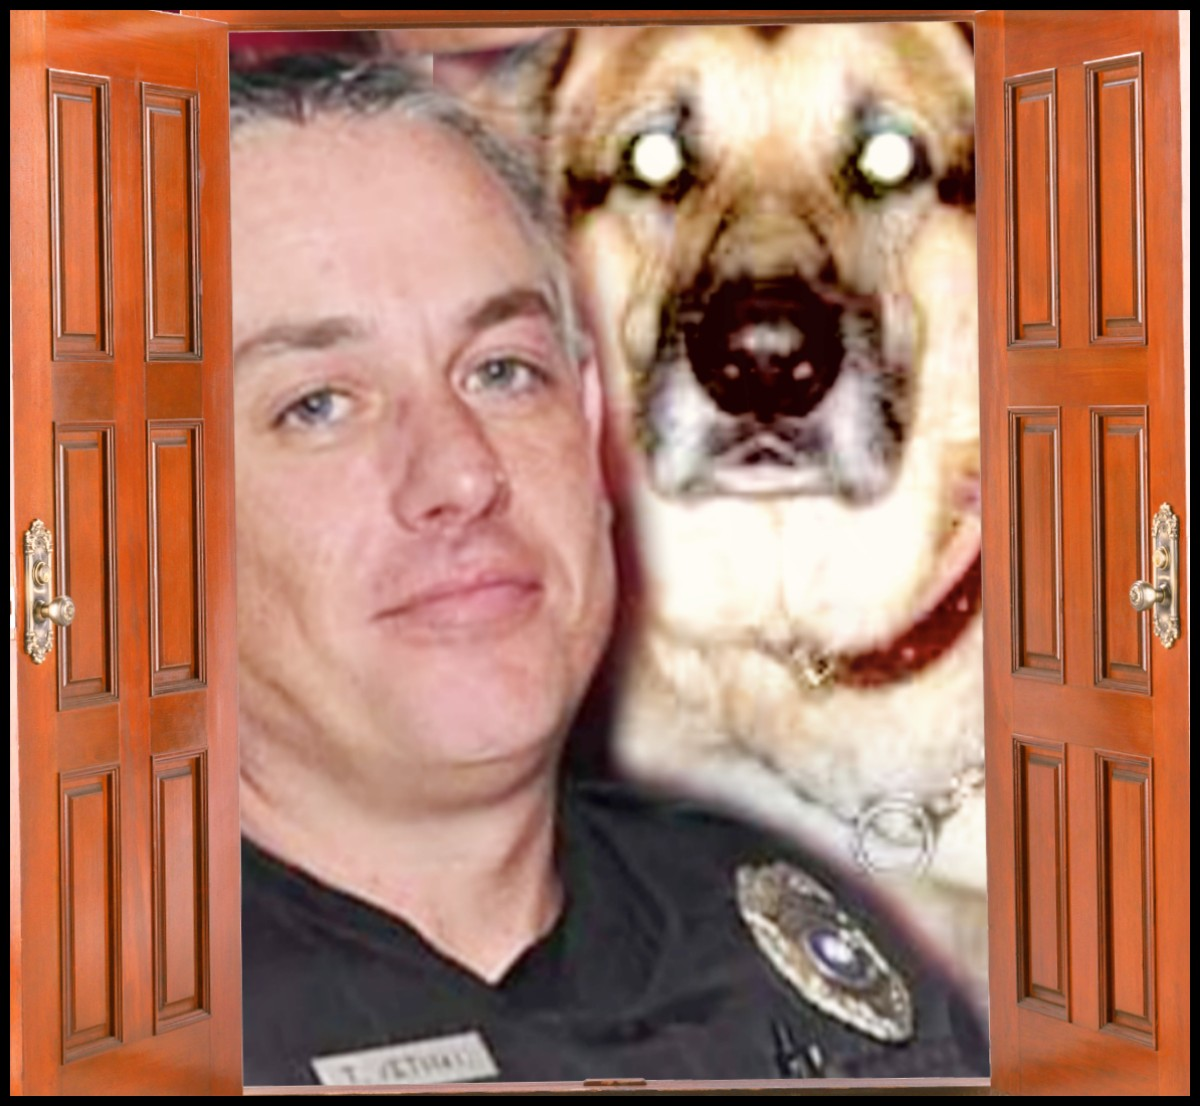 Animal Cruelty In Porn did louisiana cop terry yetman do the dog? if so, why